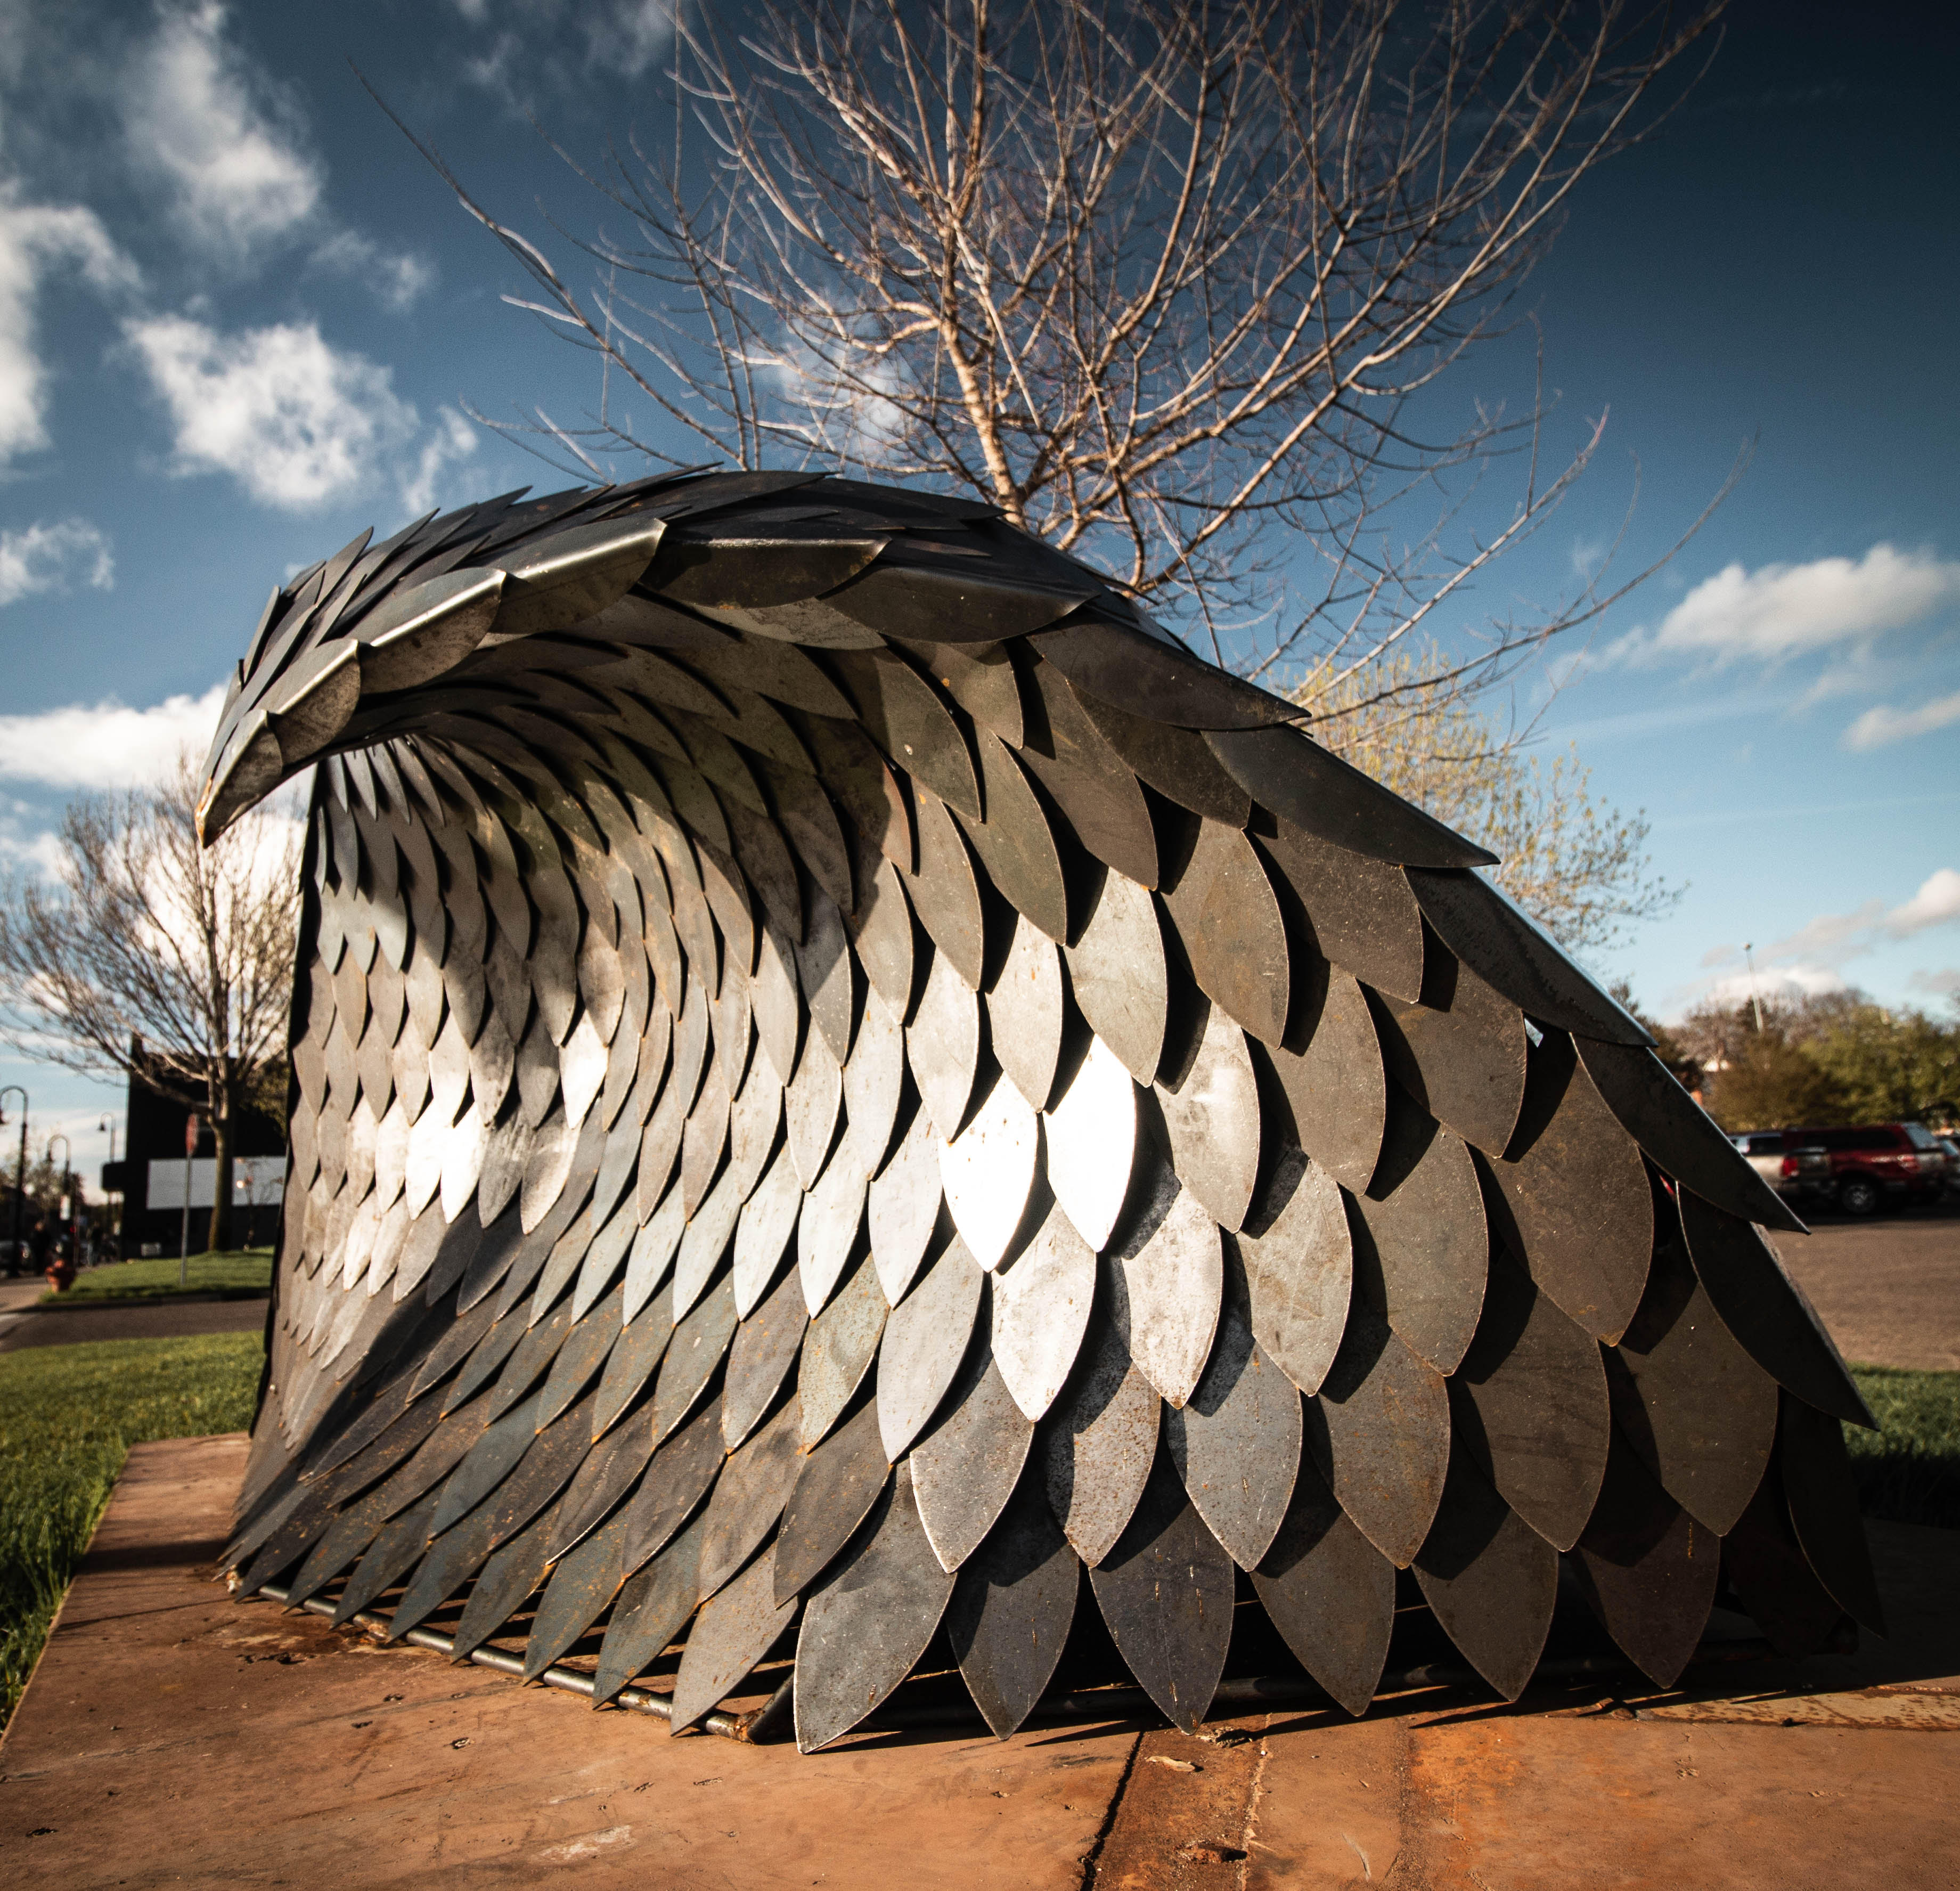 5 Things The Sculpture Tour Brings To Eau Claire